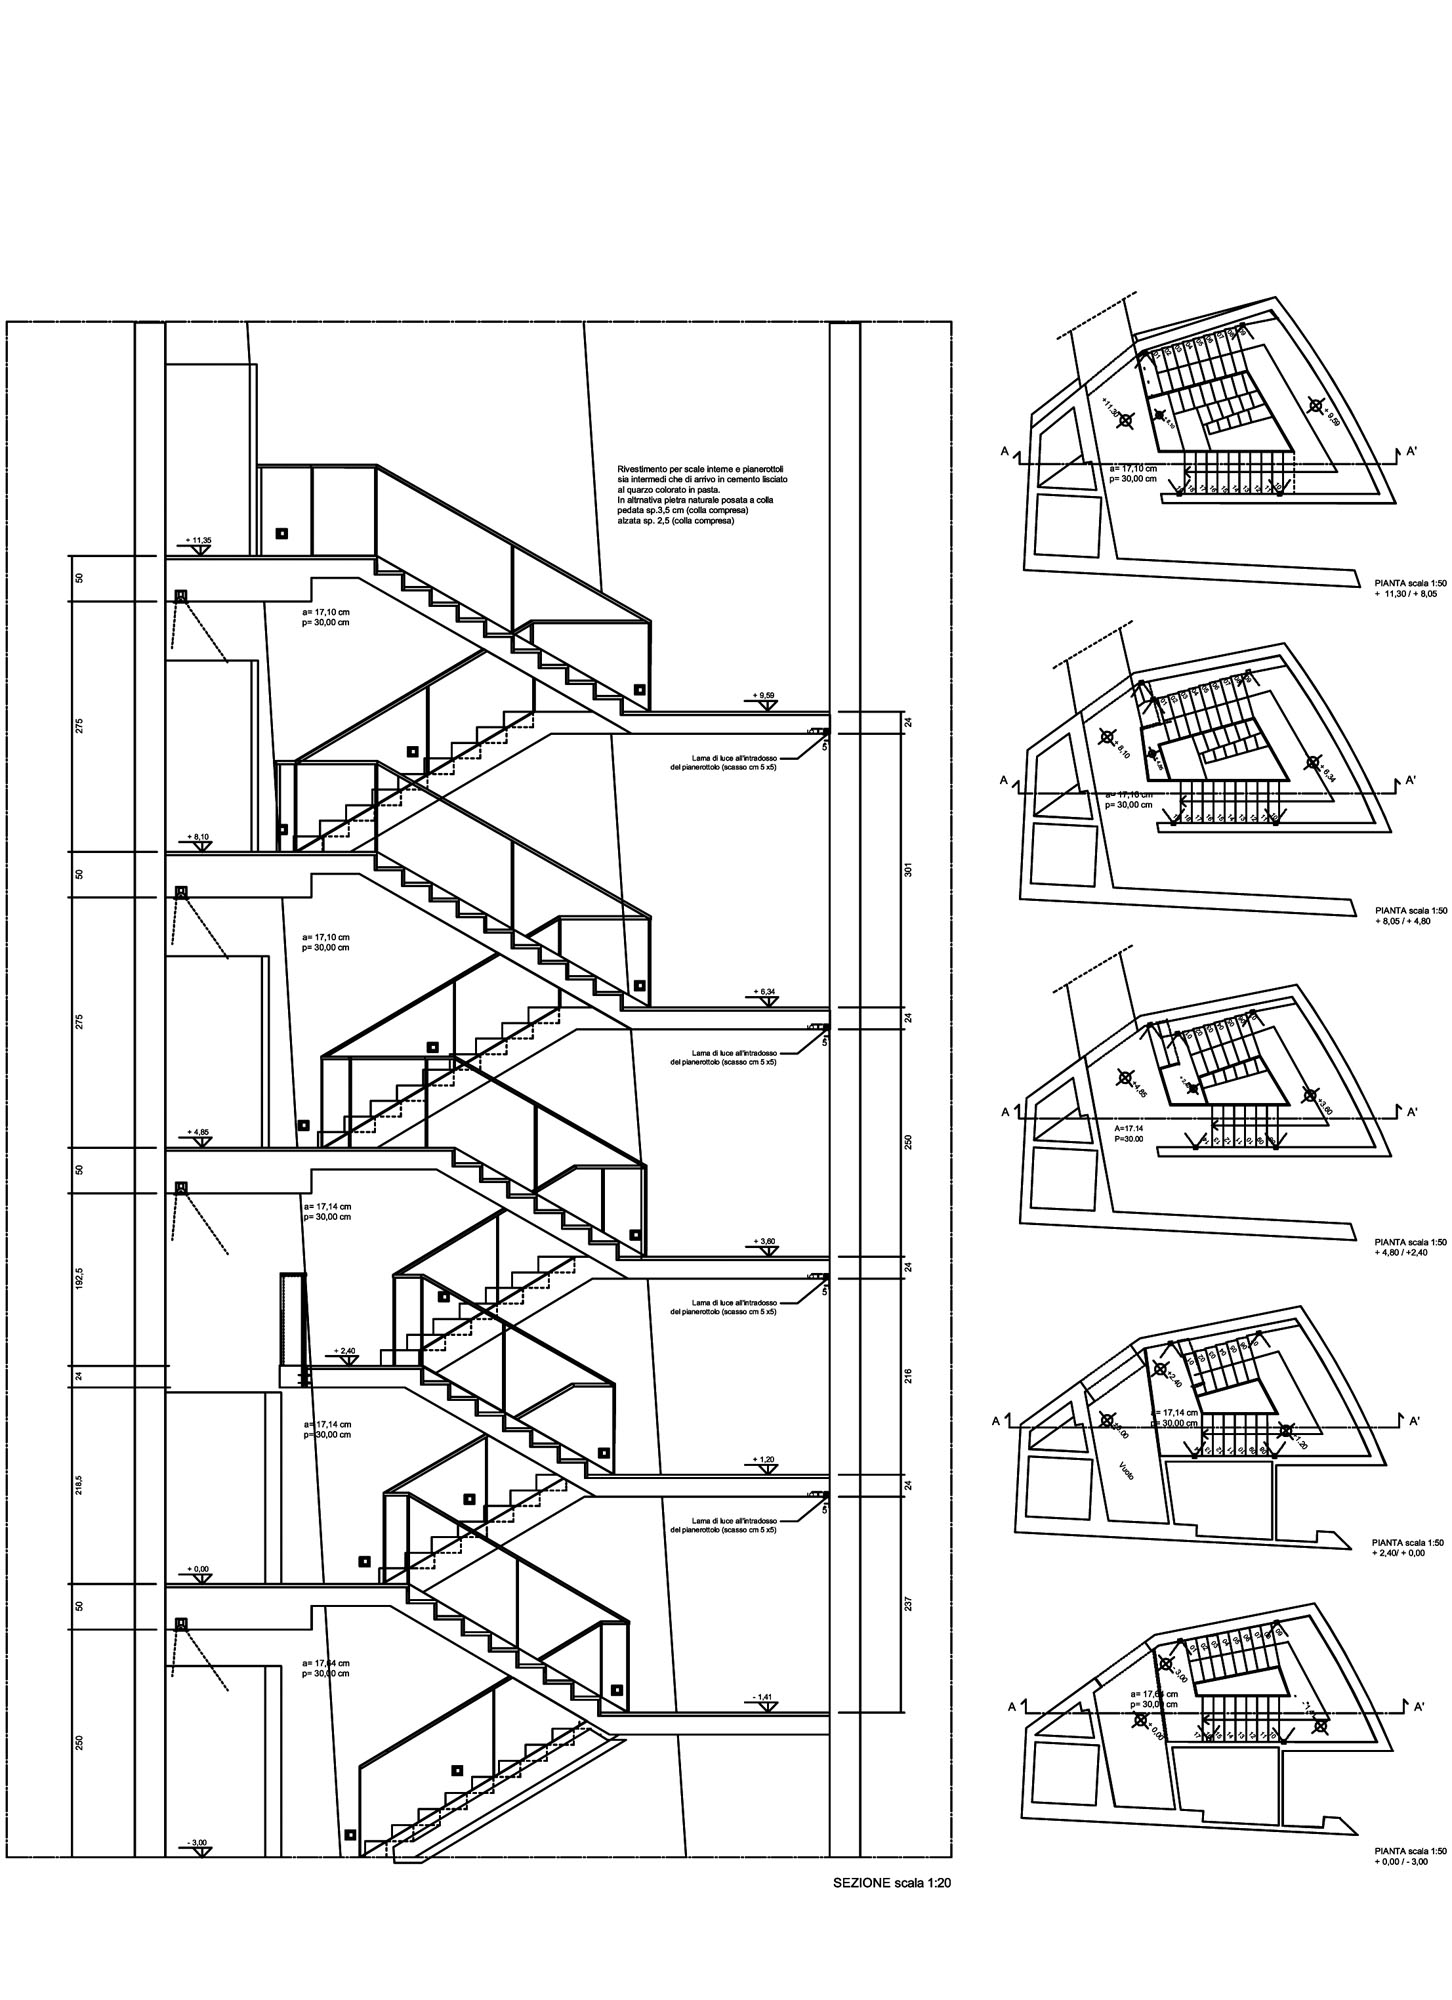 Home Design App How To Make A Second Floor Architecture Photography 1148453740 Mca Ex Ducati Stairs